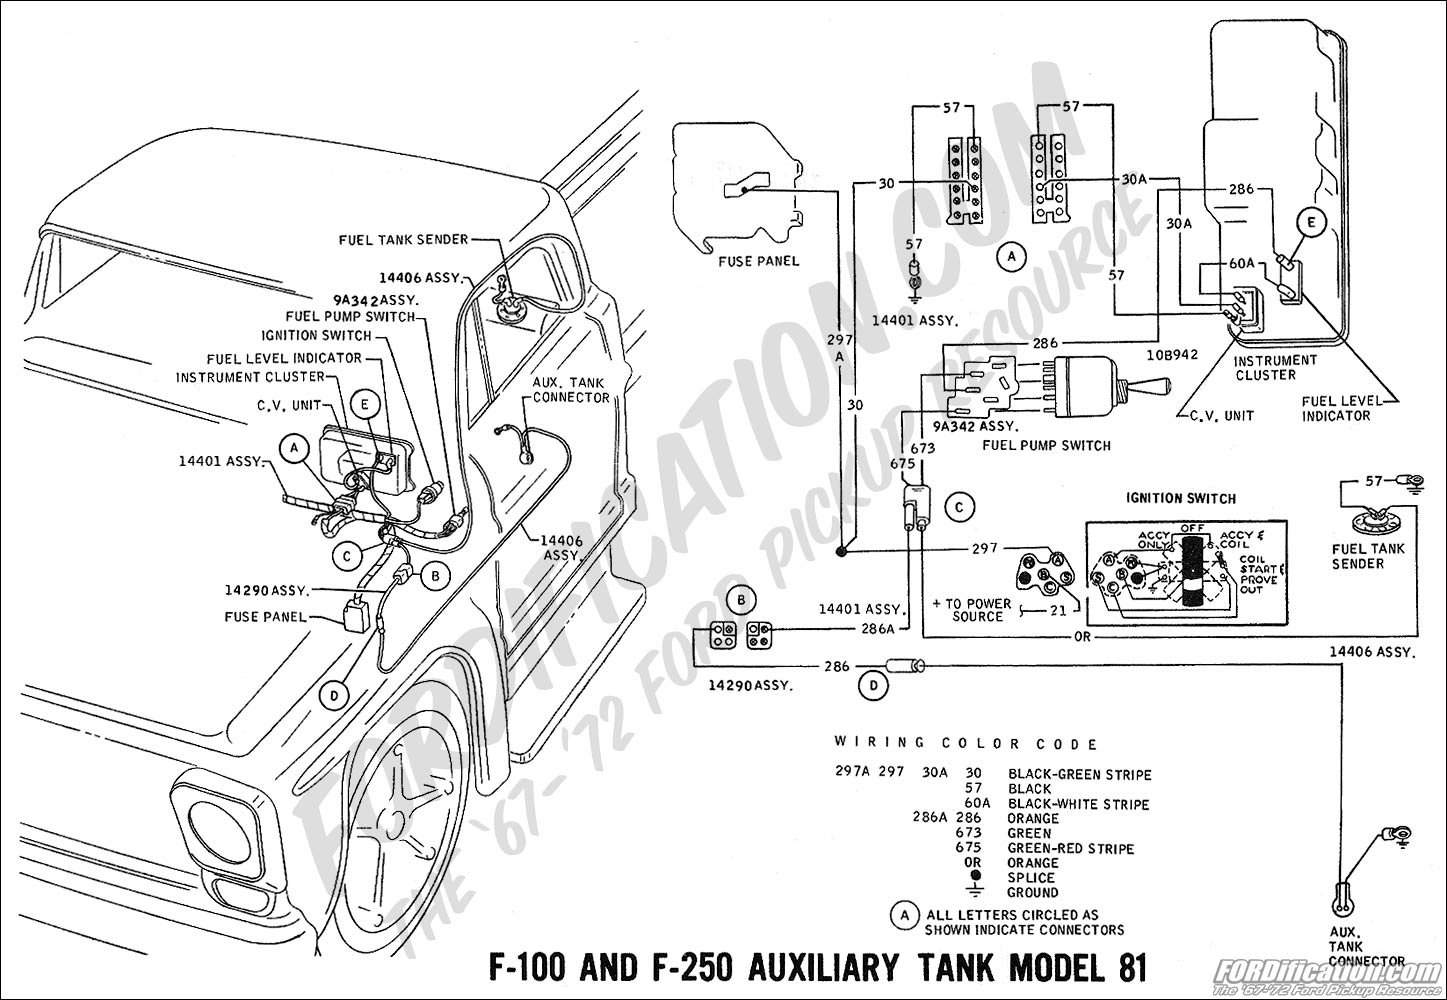 Wiring Harness 525i Fuel Tank